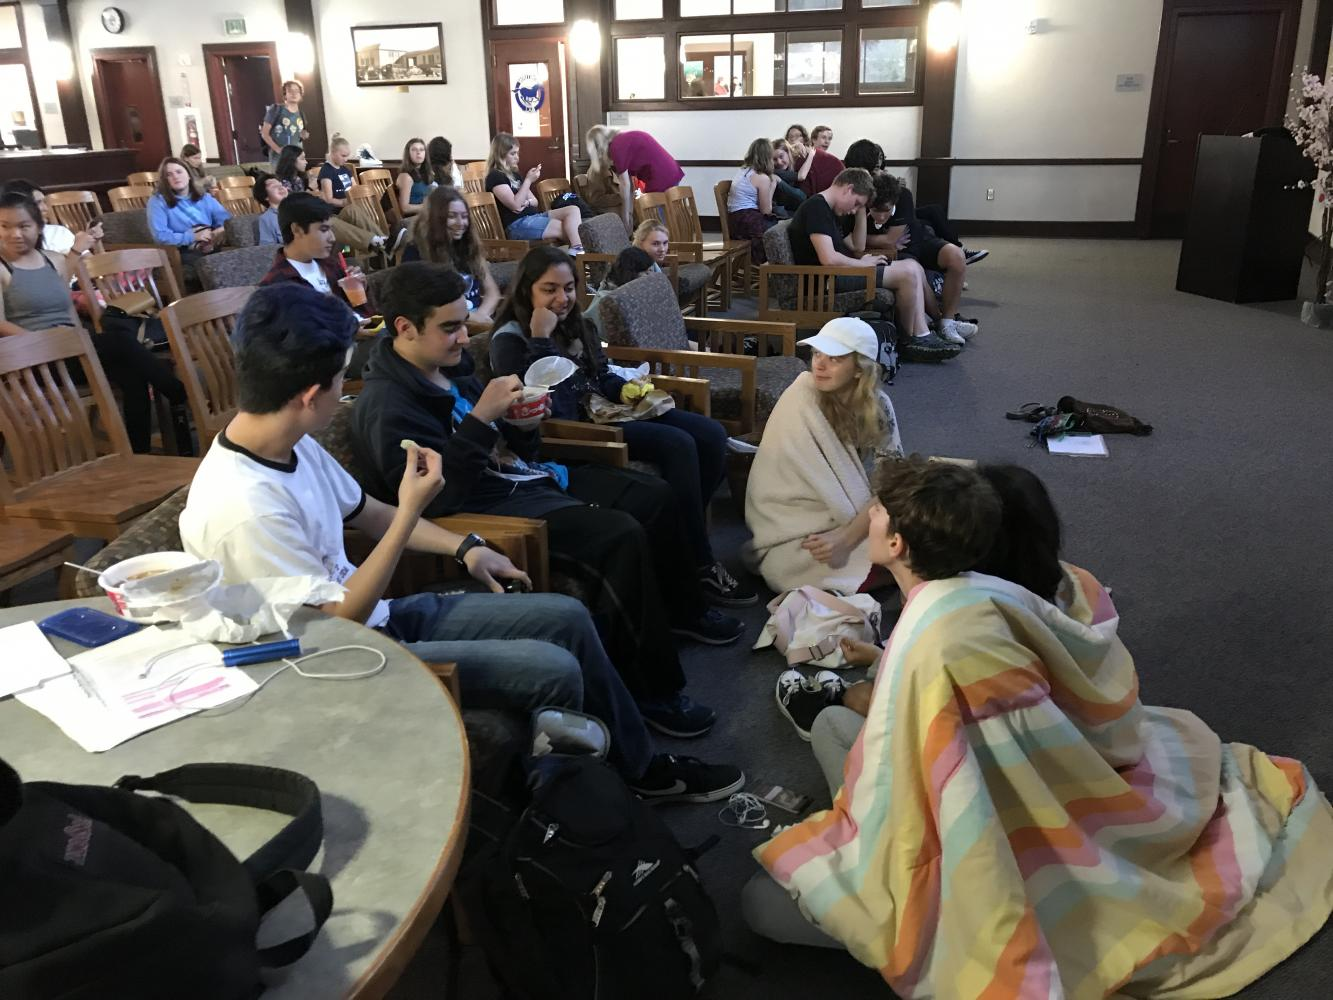 Students watched the film intently while enjoying their boba, lo mein, rice cakes, and ramune.